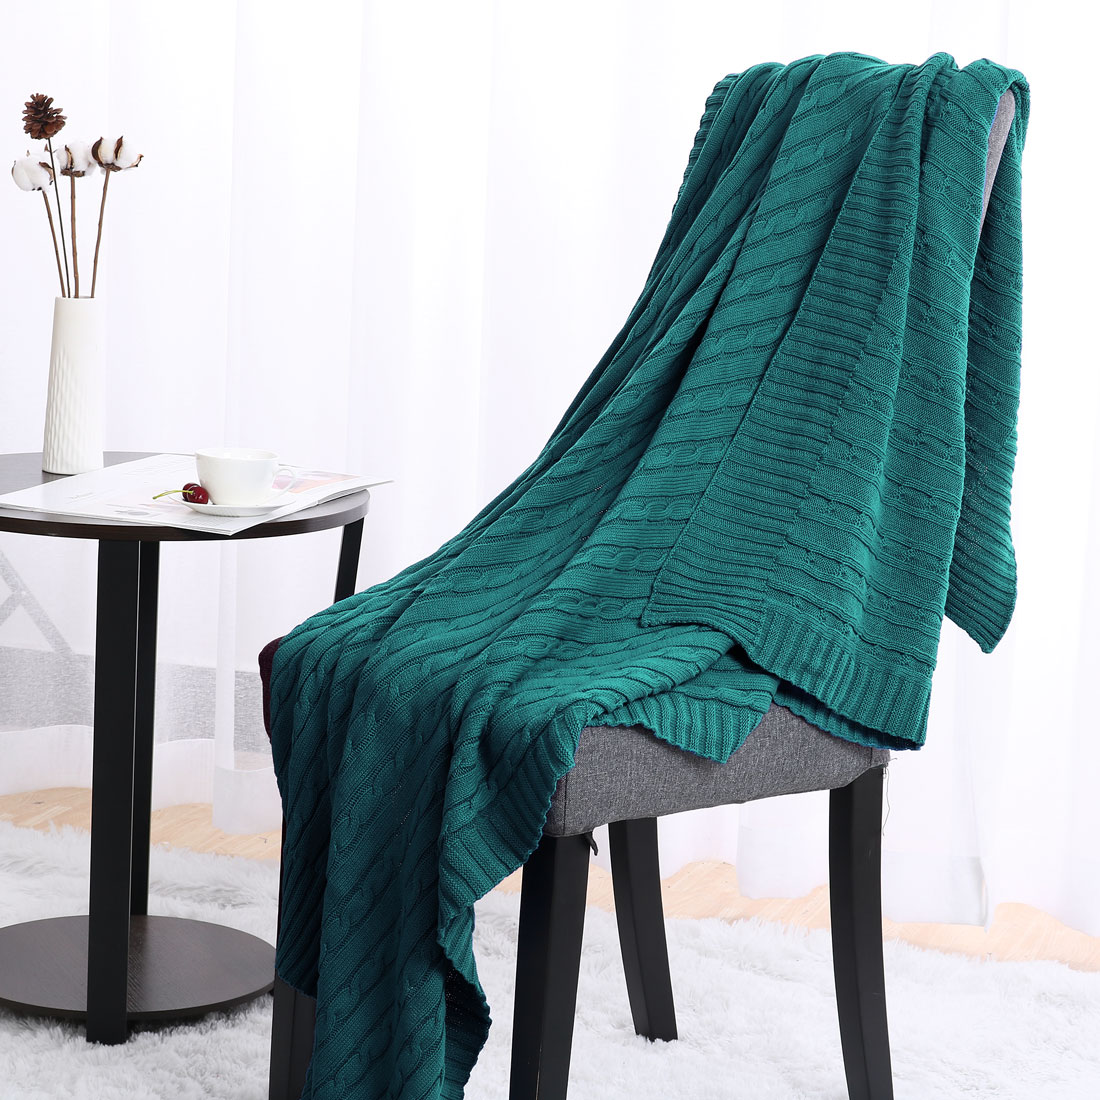 Soft Warm 100% Cotton Cable Knitted Throw For Couch Throw Blanket ,Dark Green,47 x 70 Inch